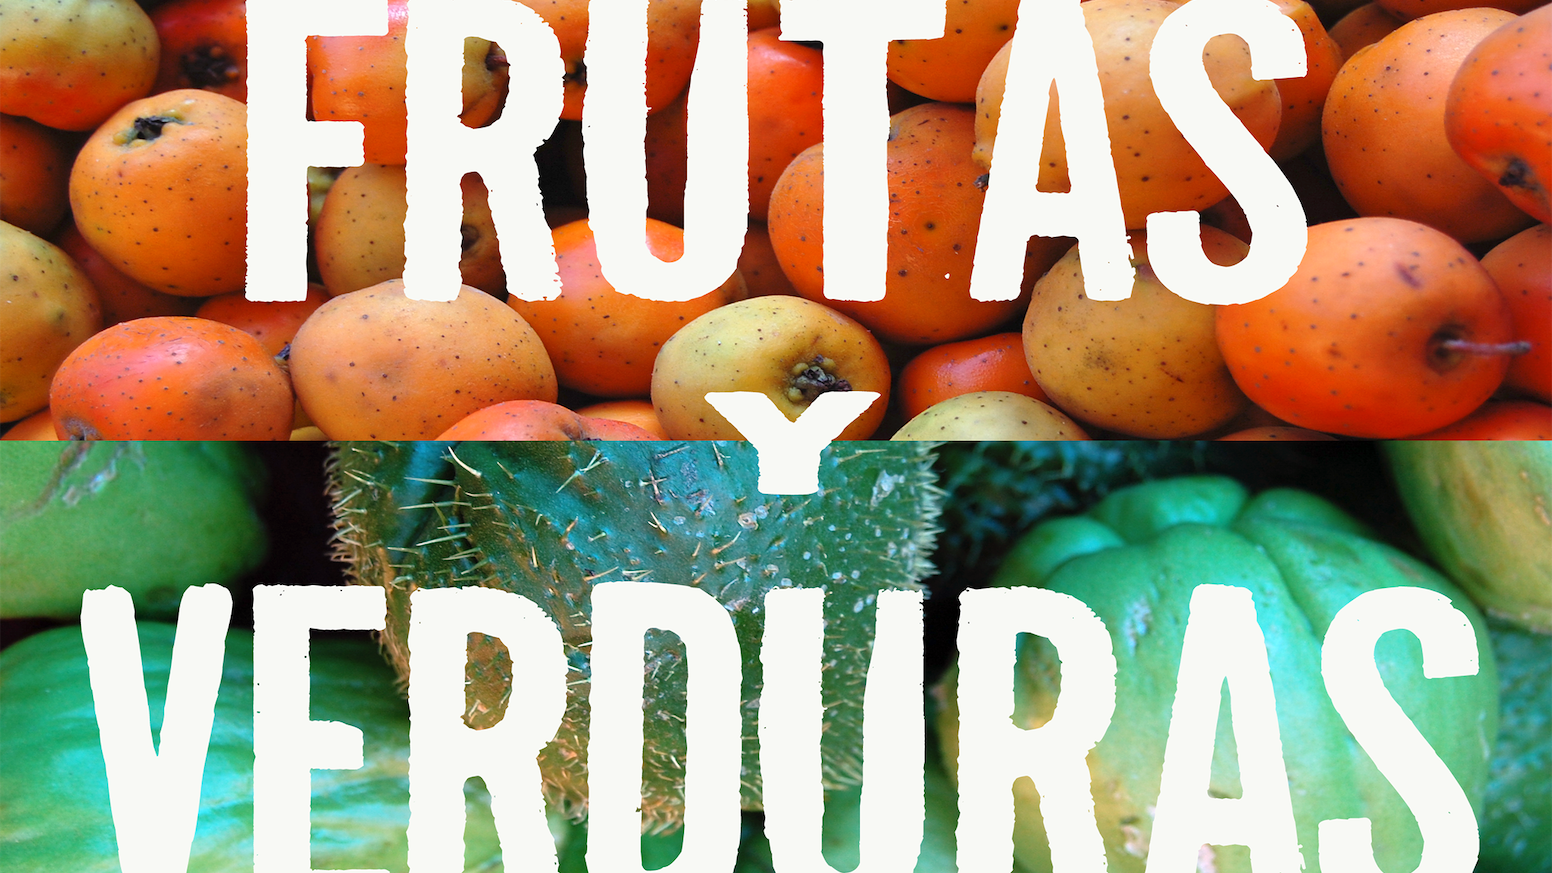 This project began as an eBook - a field guide to indigenous, regional  fruits & vegetables of Mexico (iTunes -2016). Now, the project has grown to include Plant Food Lovers Experiences like tours and cooking classes in 5 cities in Mexico!